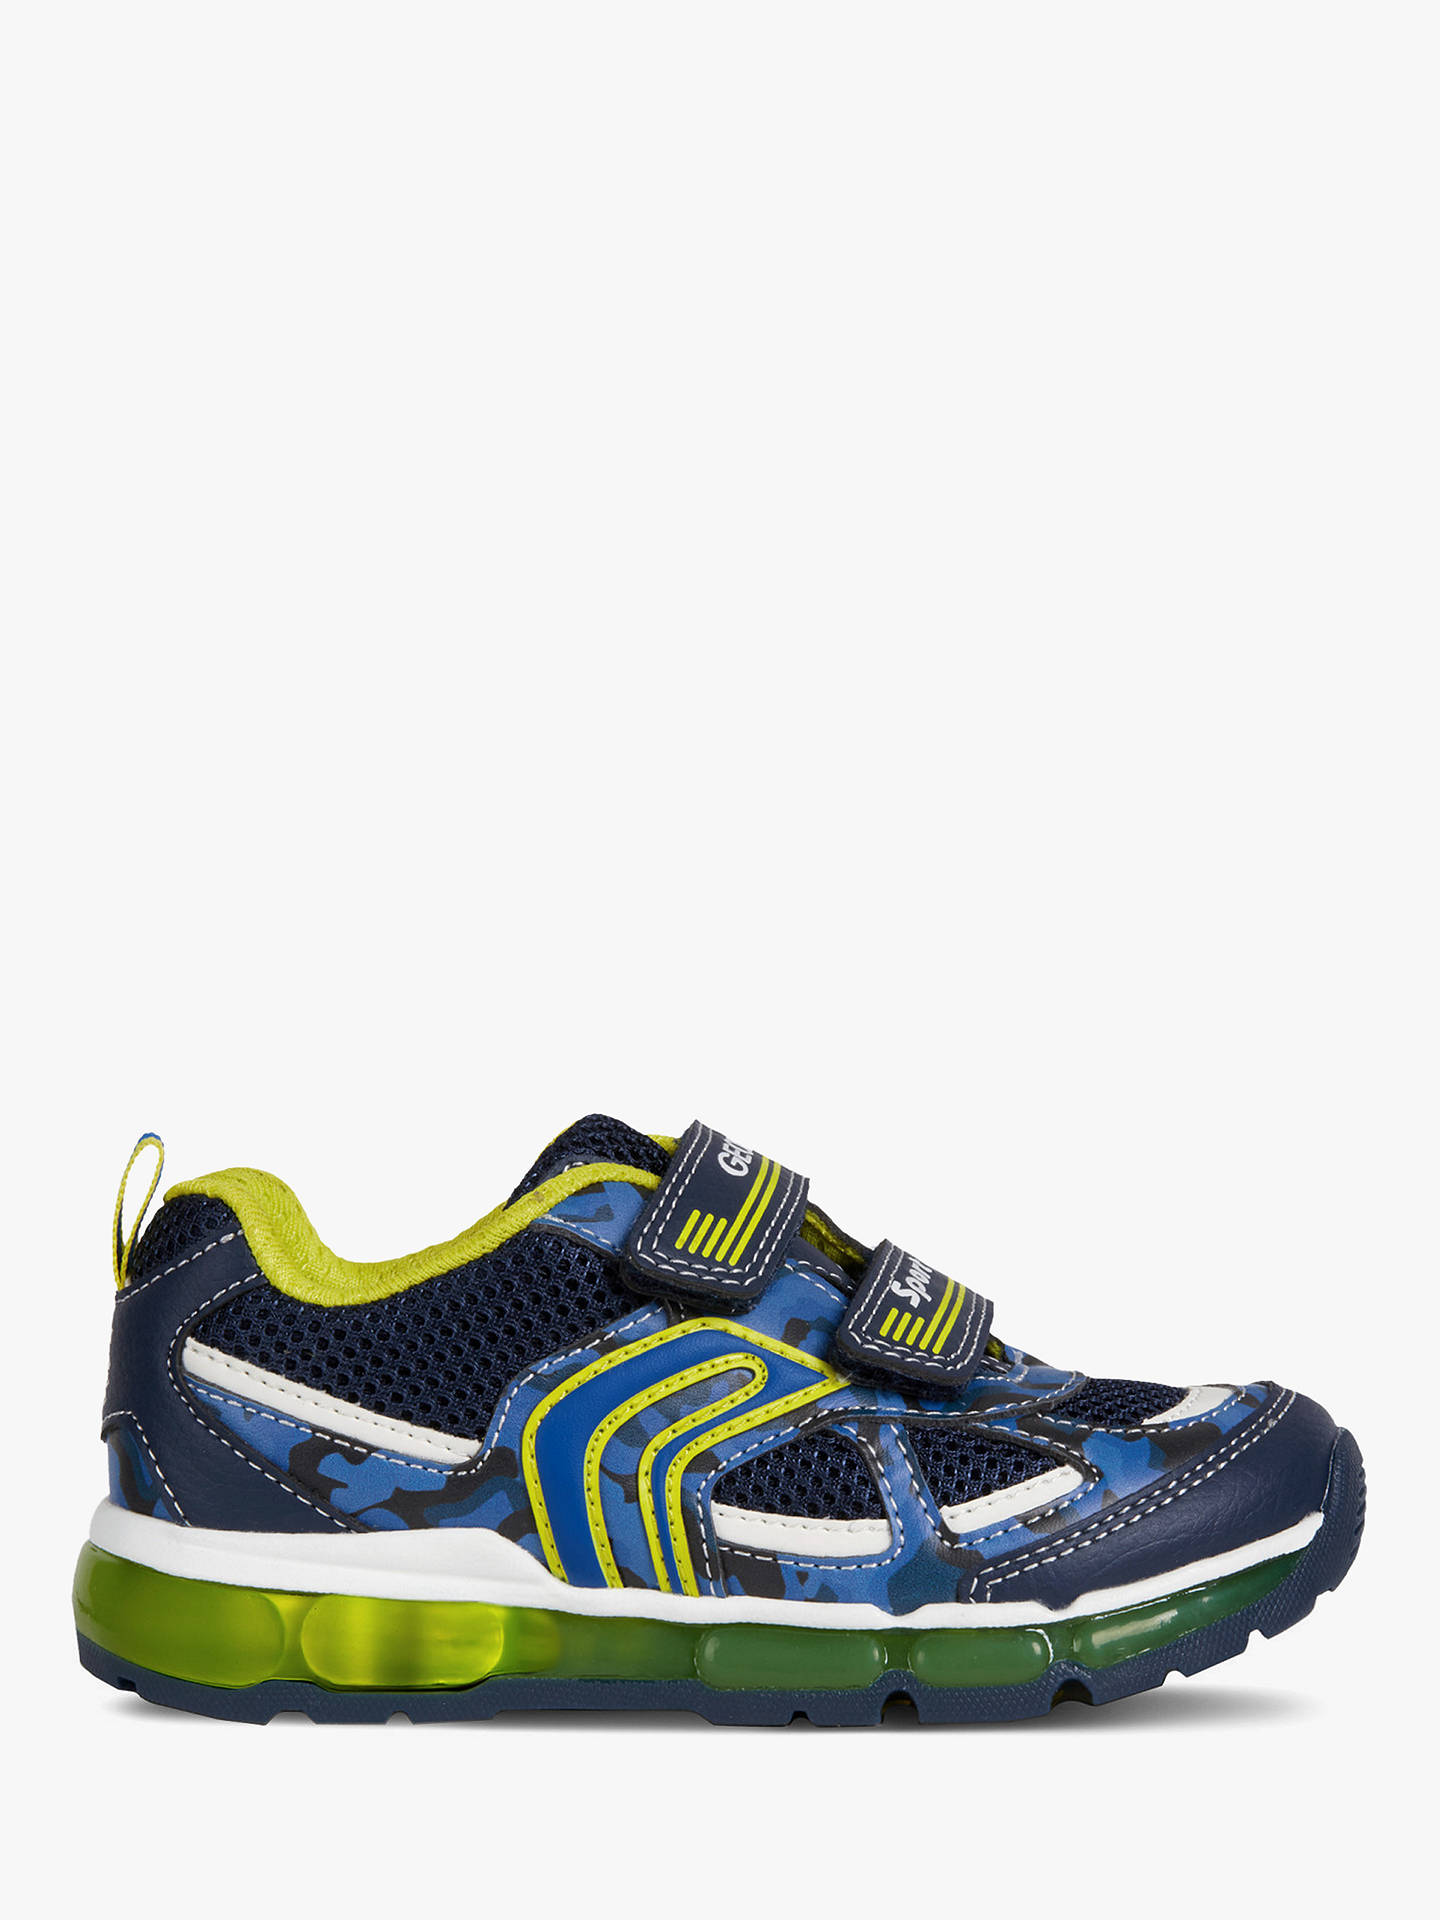 099a33db98c9 Buy Geox Children's J Android Riptape Trainers, Navy/Lime, 36 Online at  johnlewis ...